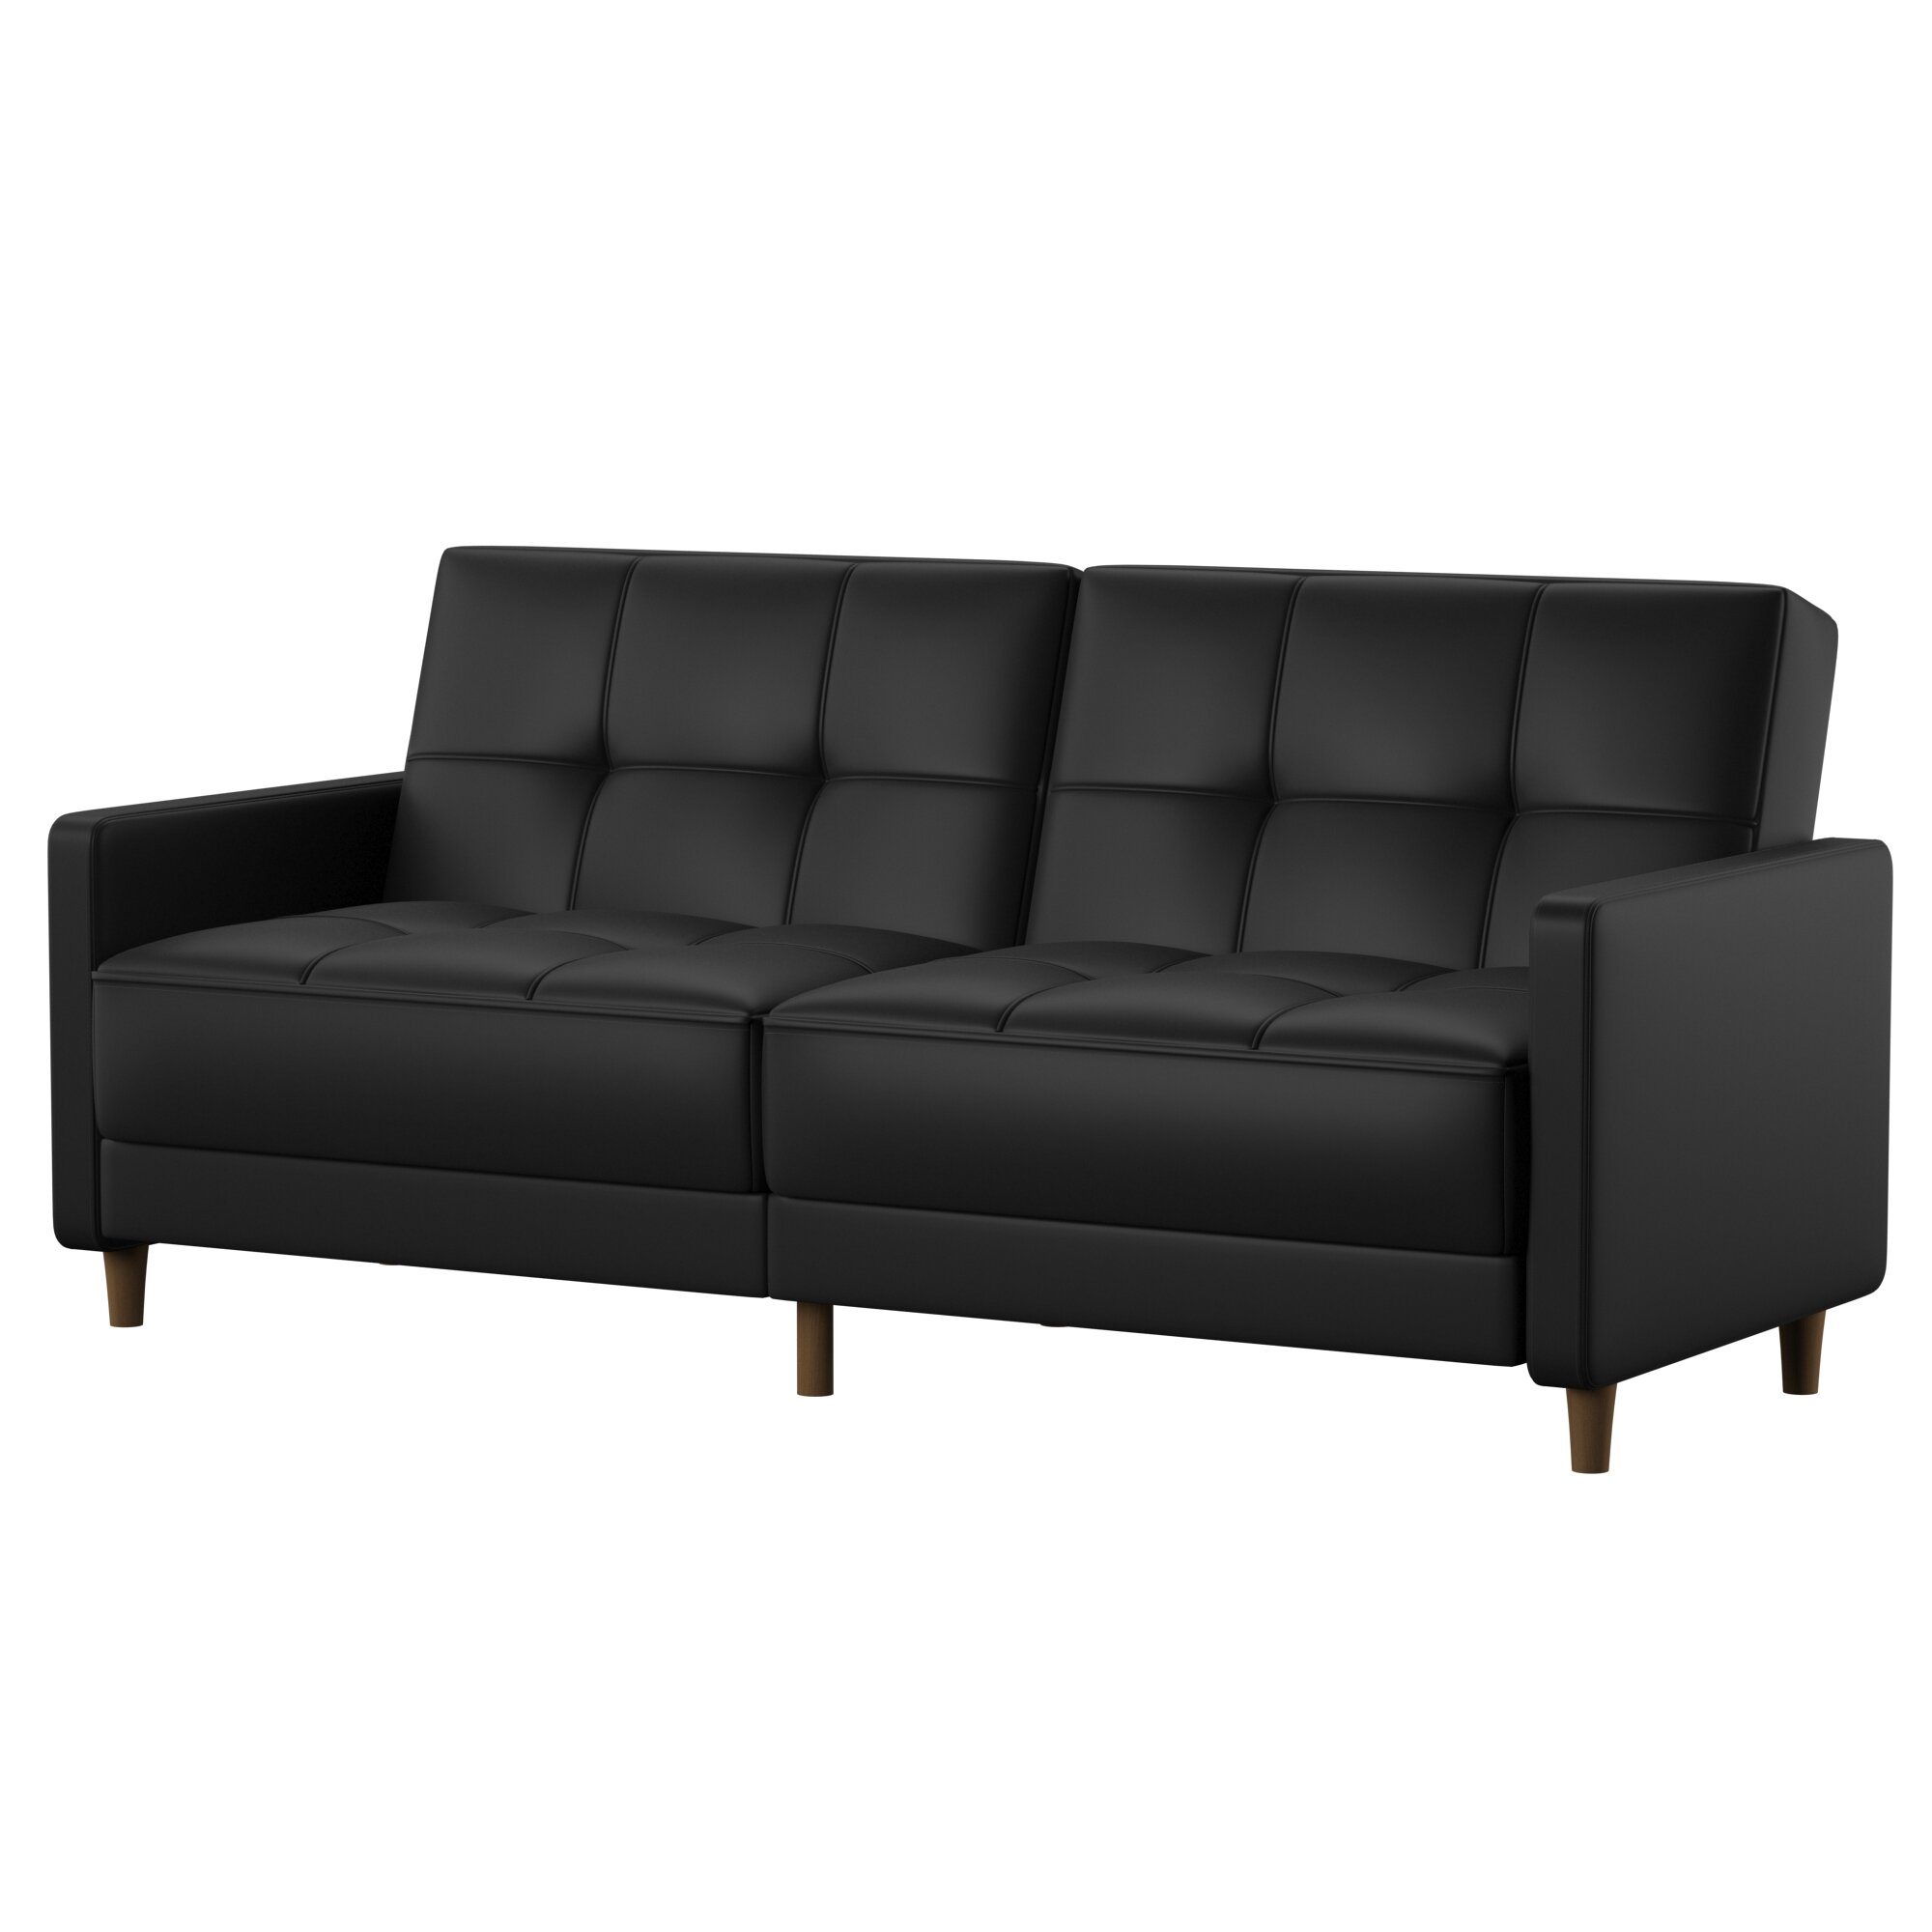 Teen Bedroom Couch | Wayfair